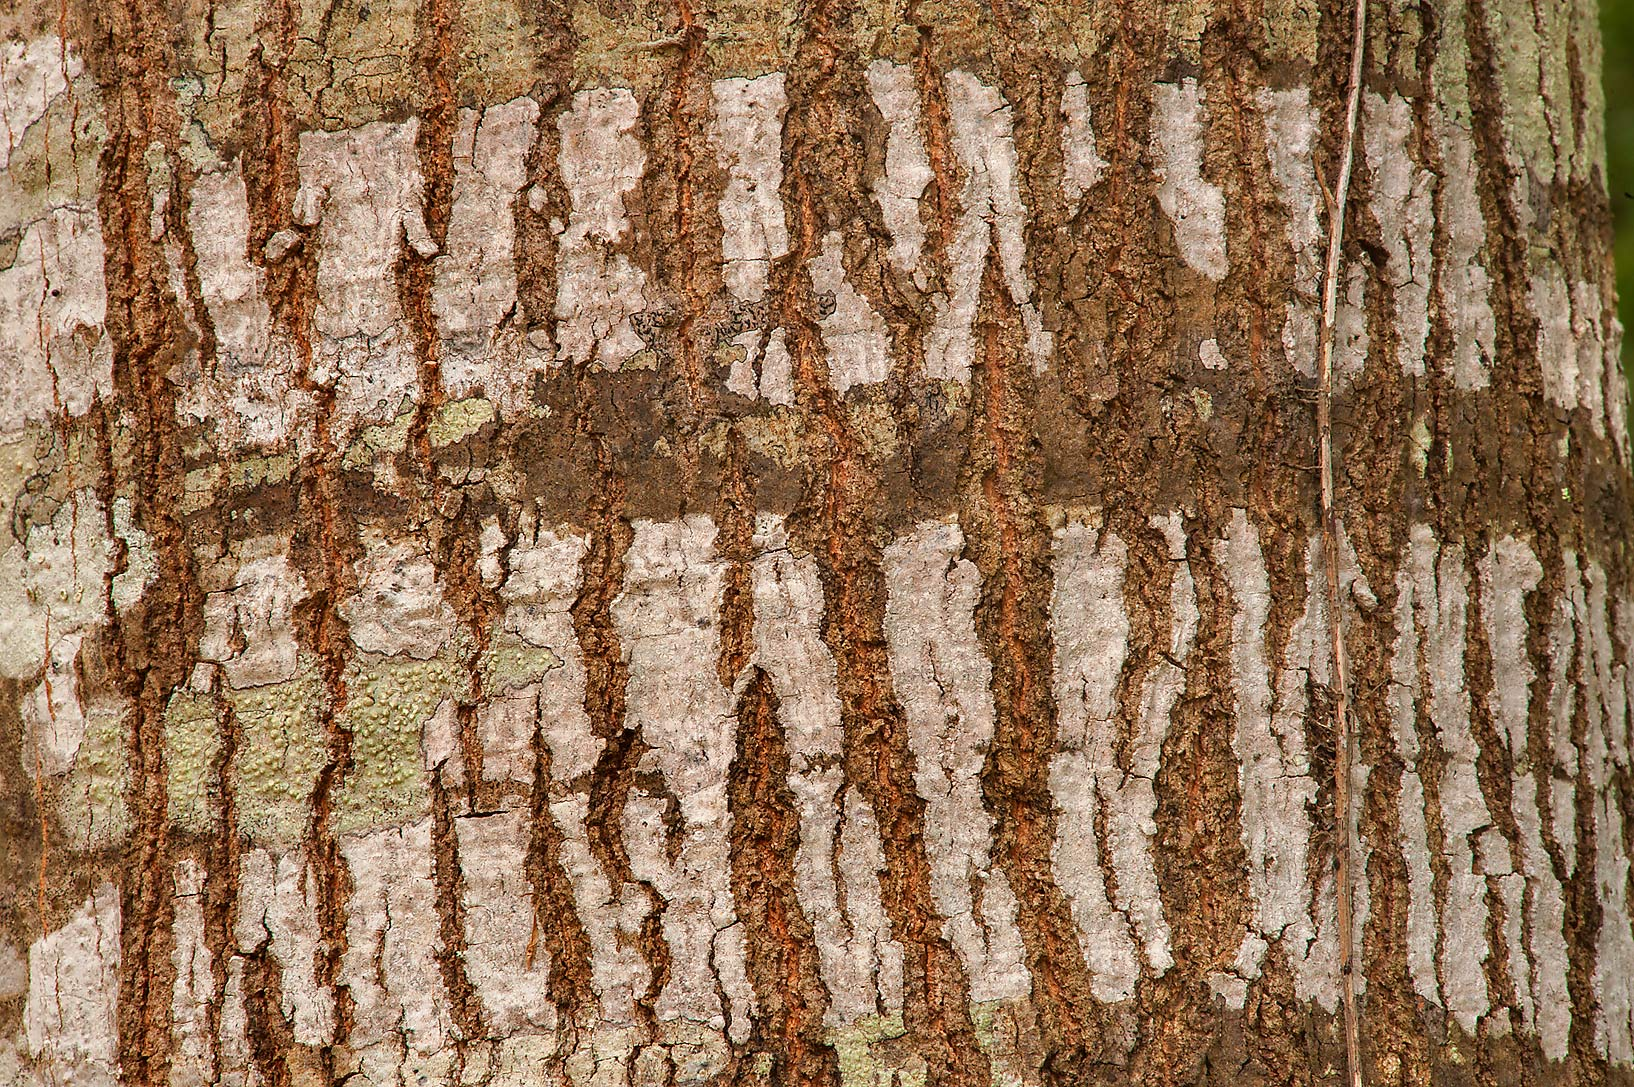 Bark of water oak in Lick Creek Park. College Station, Texas